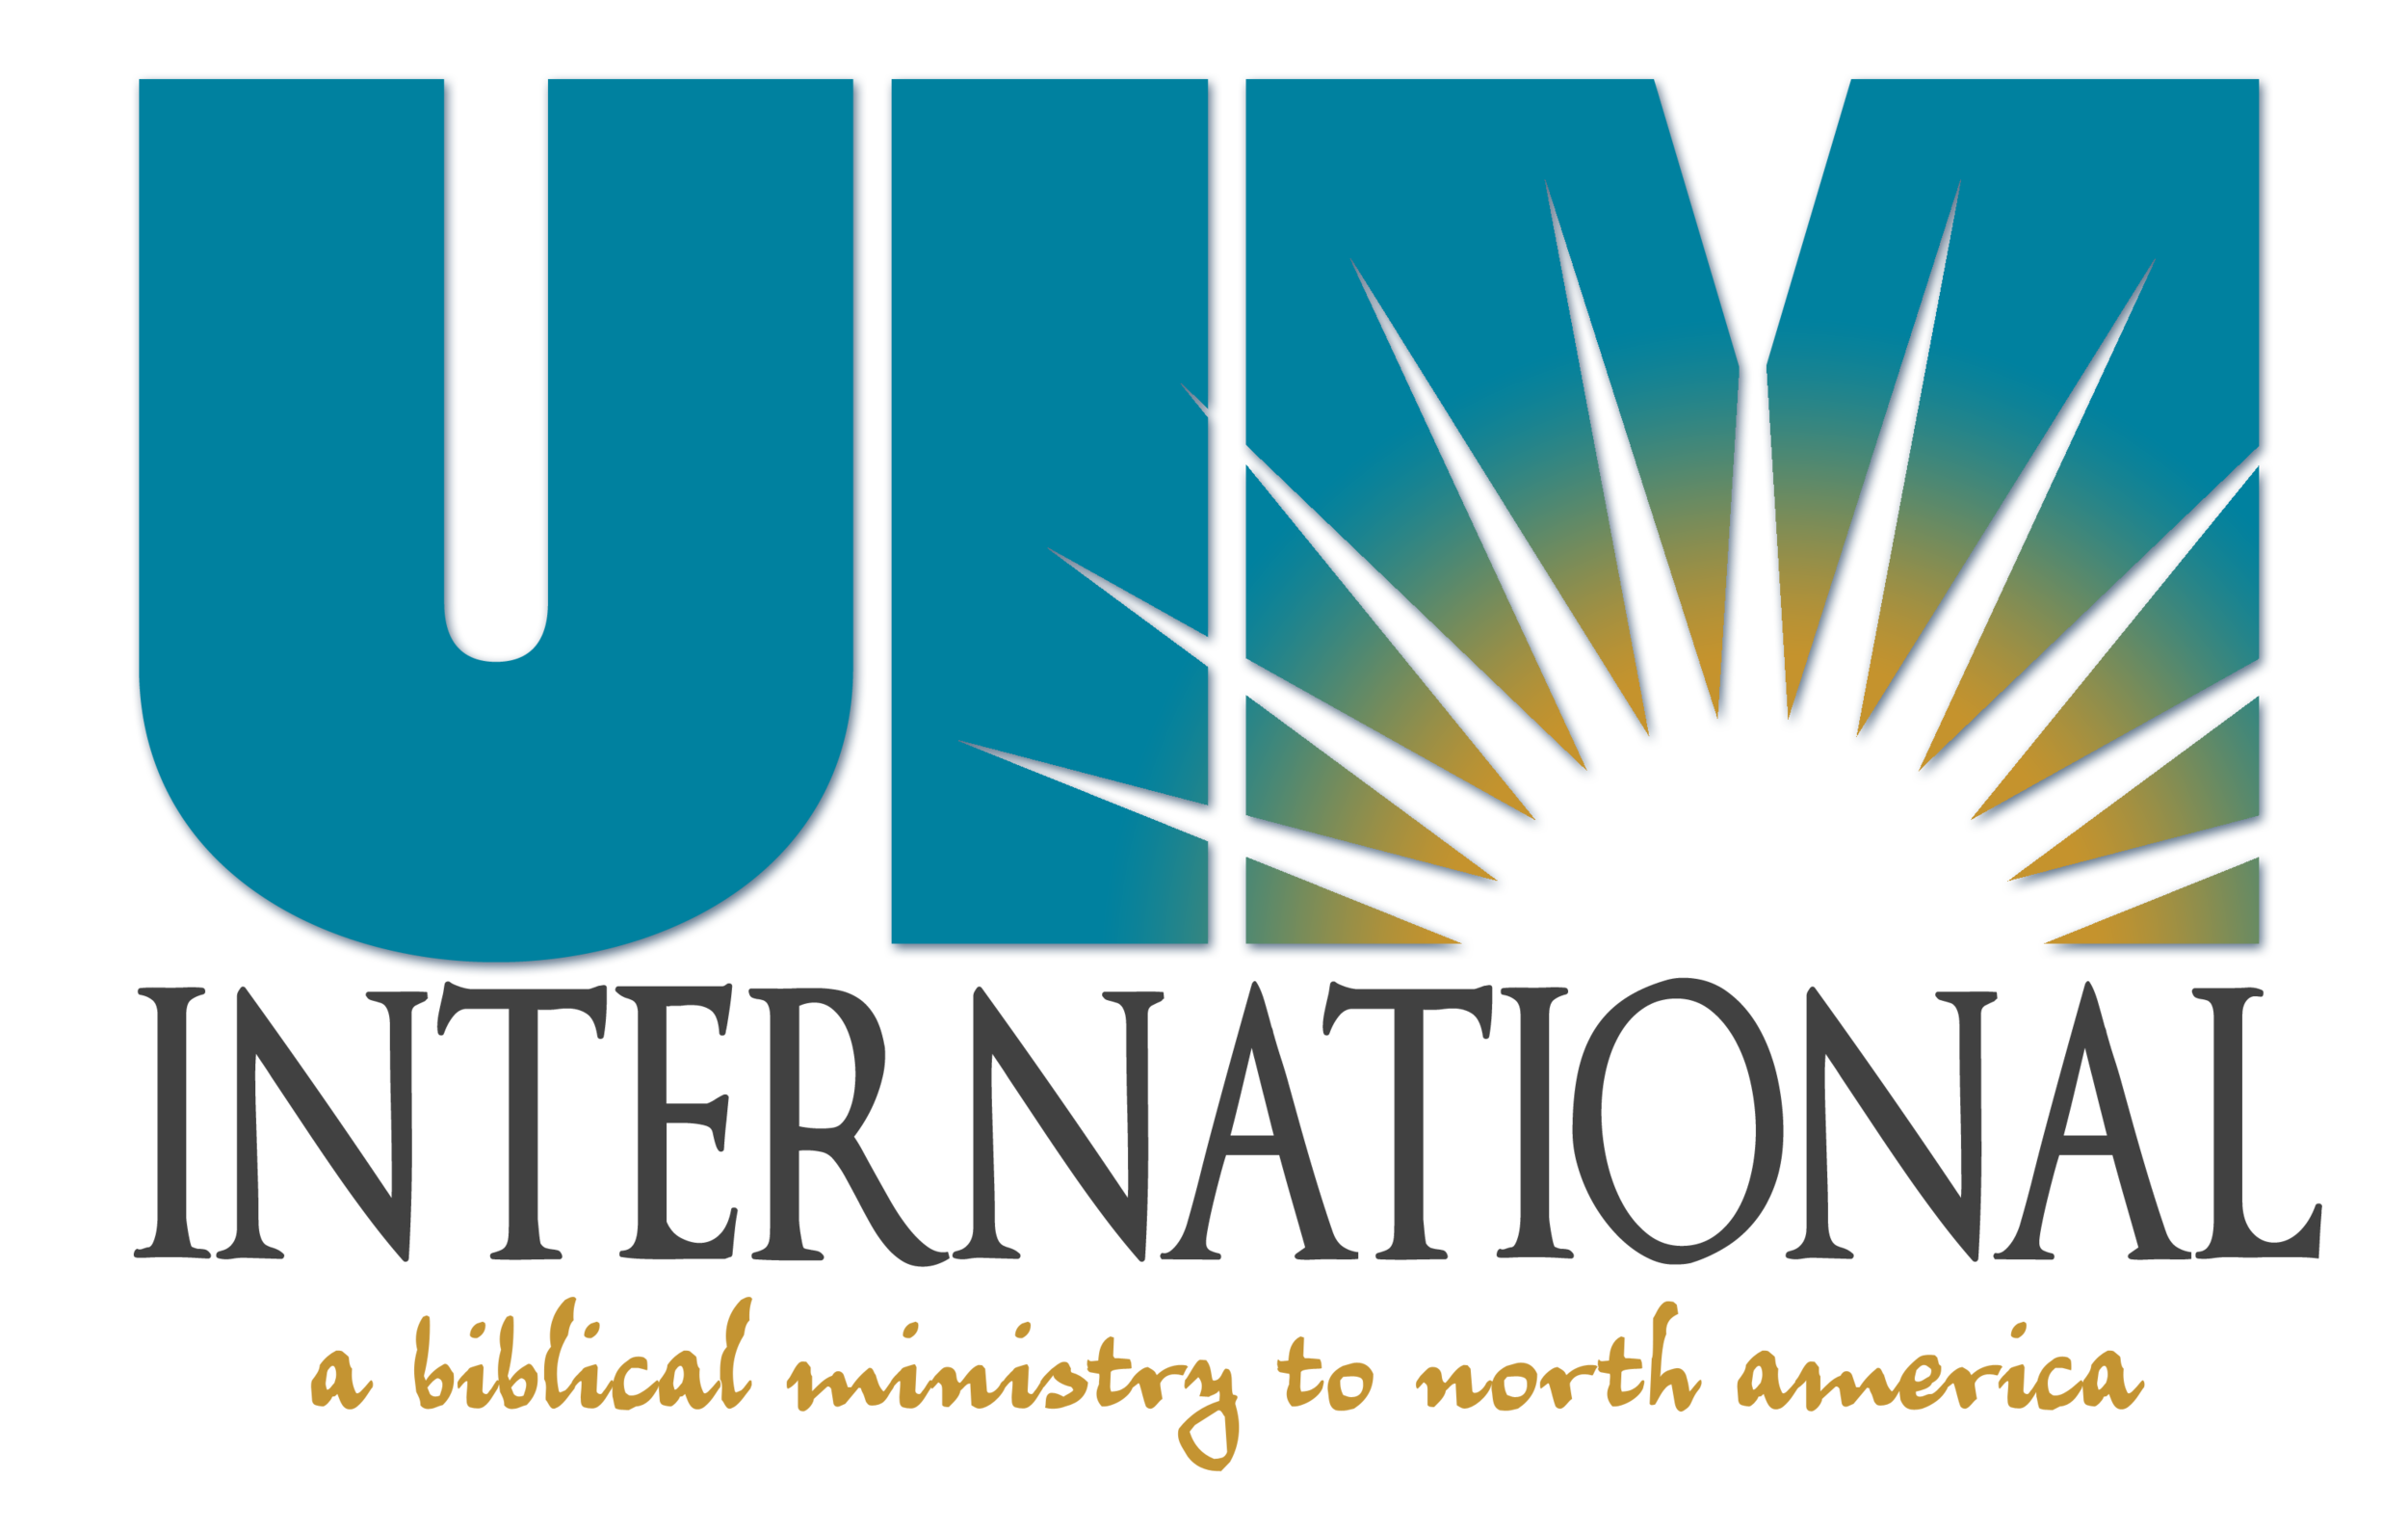 UIM International - UIM Aviation works in tandem with United Indian Missions (UIM International), whose primary purpose is to establish and strengthen churches among Native, Mexican, Hispanic and Cuban communities of North America, built on the Scriptures and functioning within their cultural orientation. UIM Aviation supports these efforts through aviation transportation.